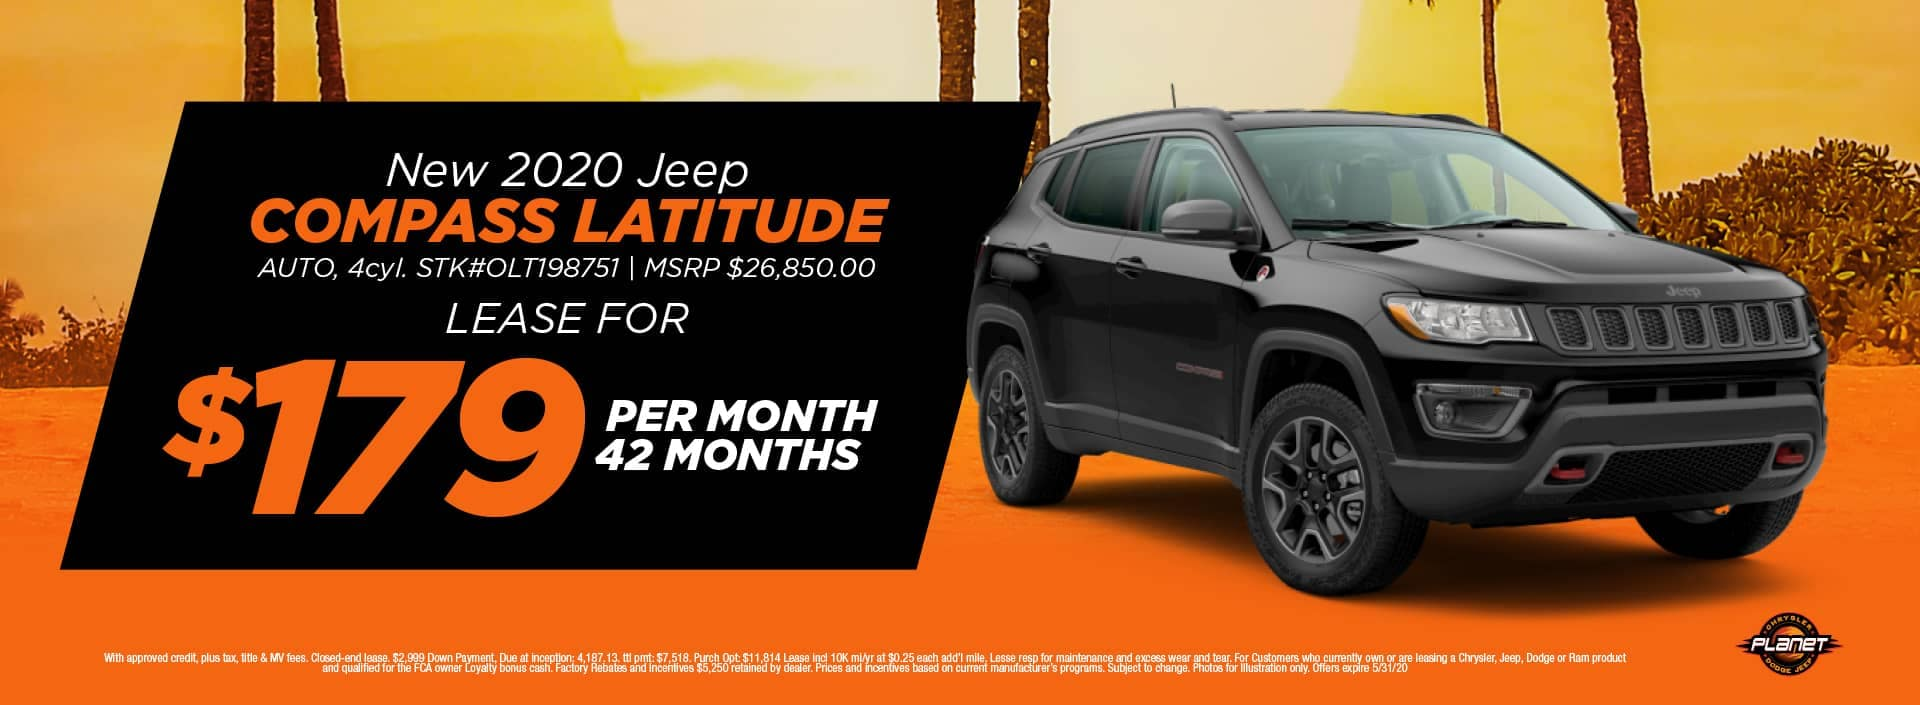 banner for 2020 Jeep Compass Latitude